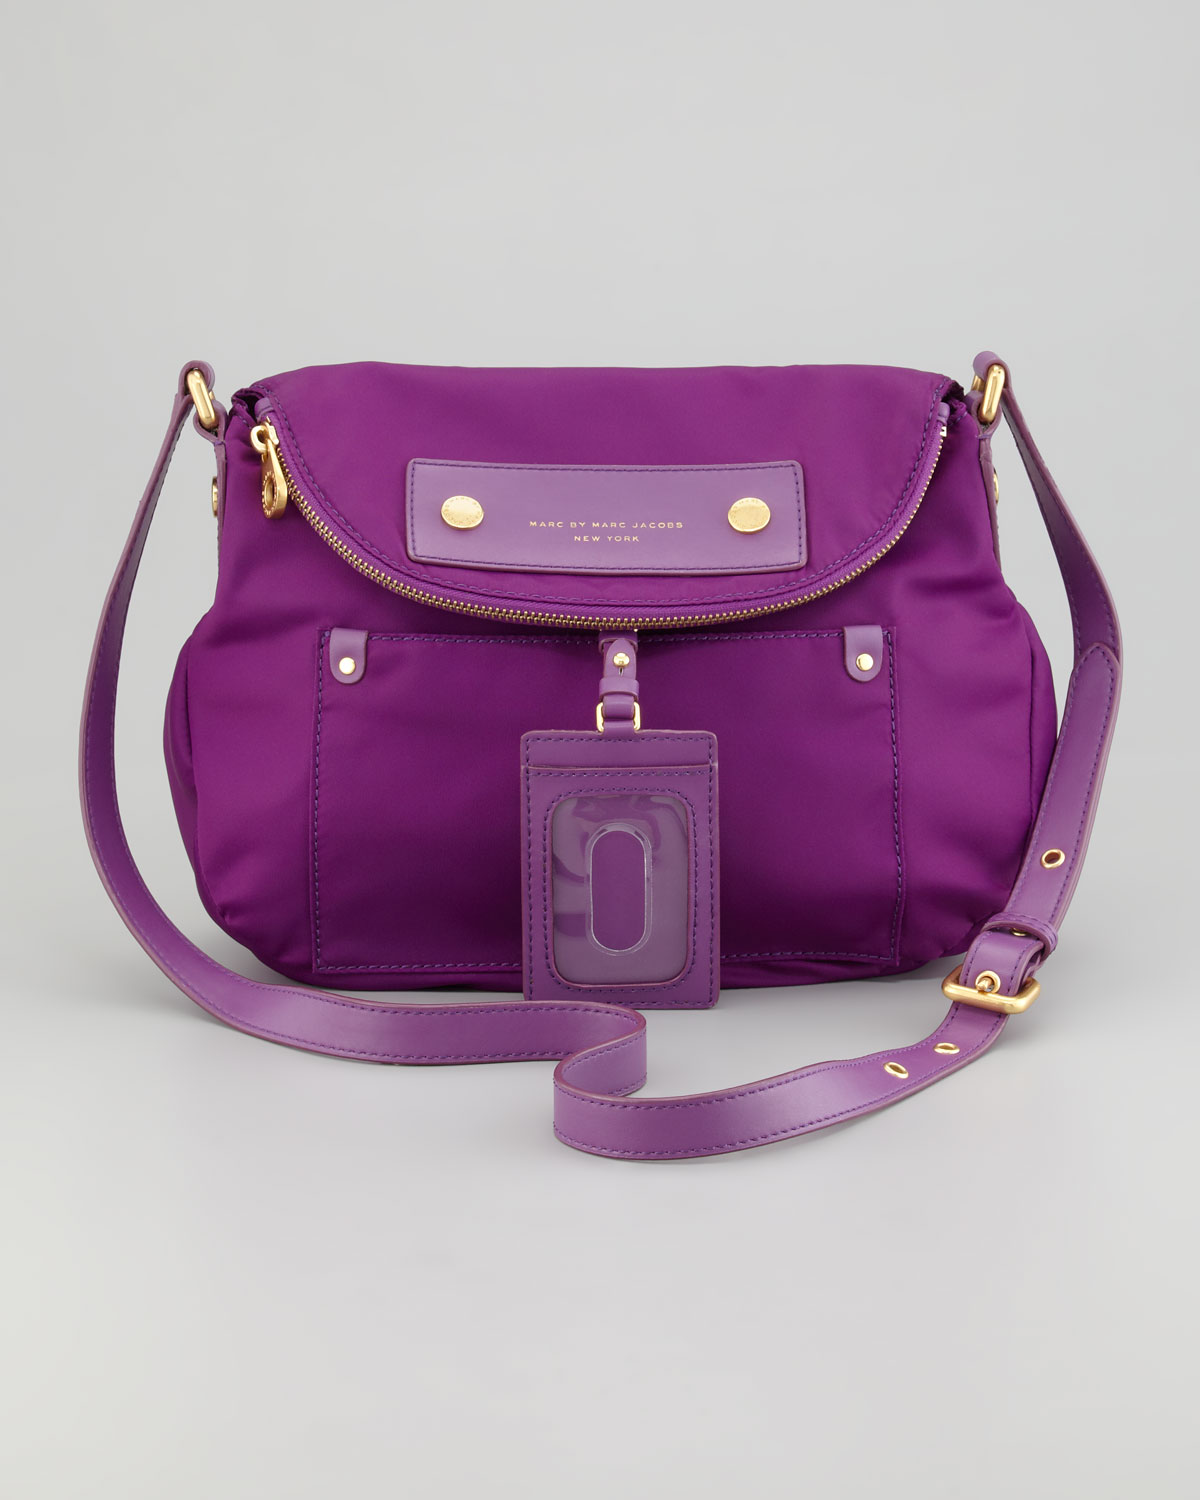 6d896ea723 Gallery. Previously sold at: Bergdorf Goodman, Neiman Marcus · Women's Marc  Jacobs Natasha